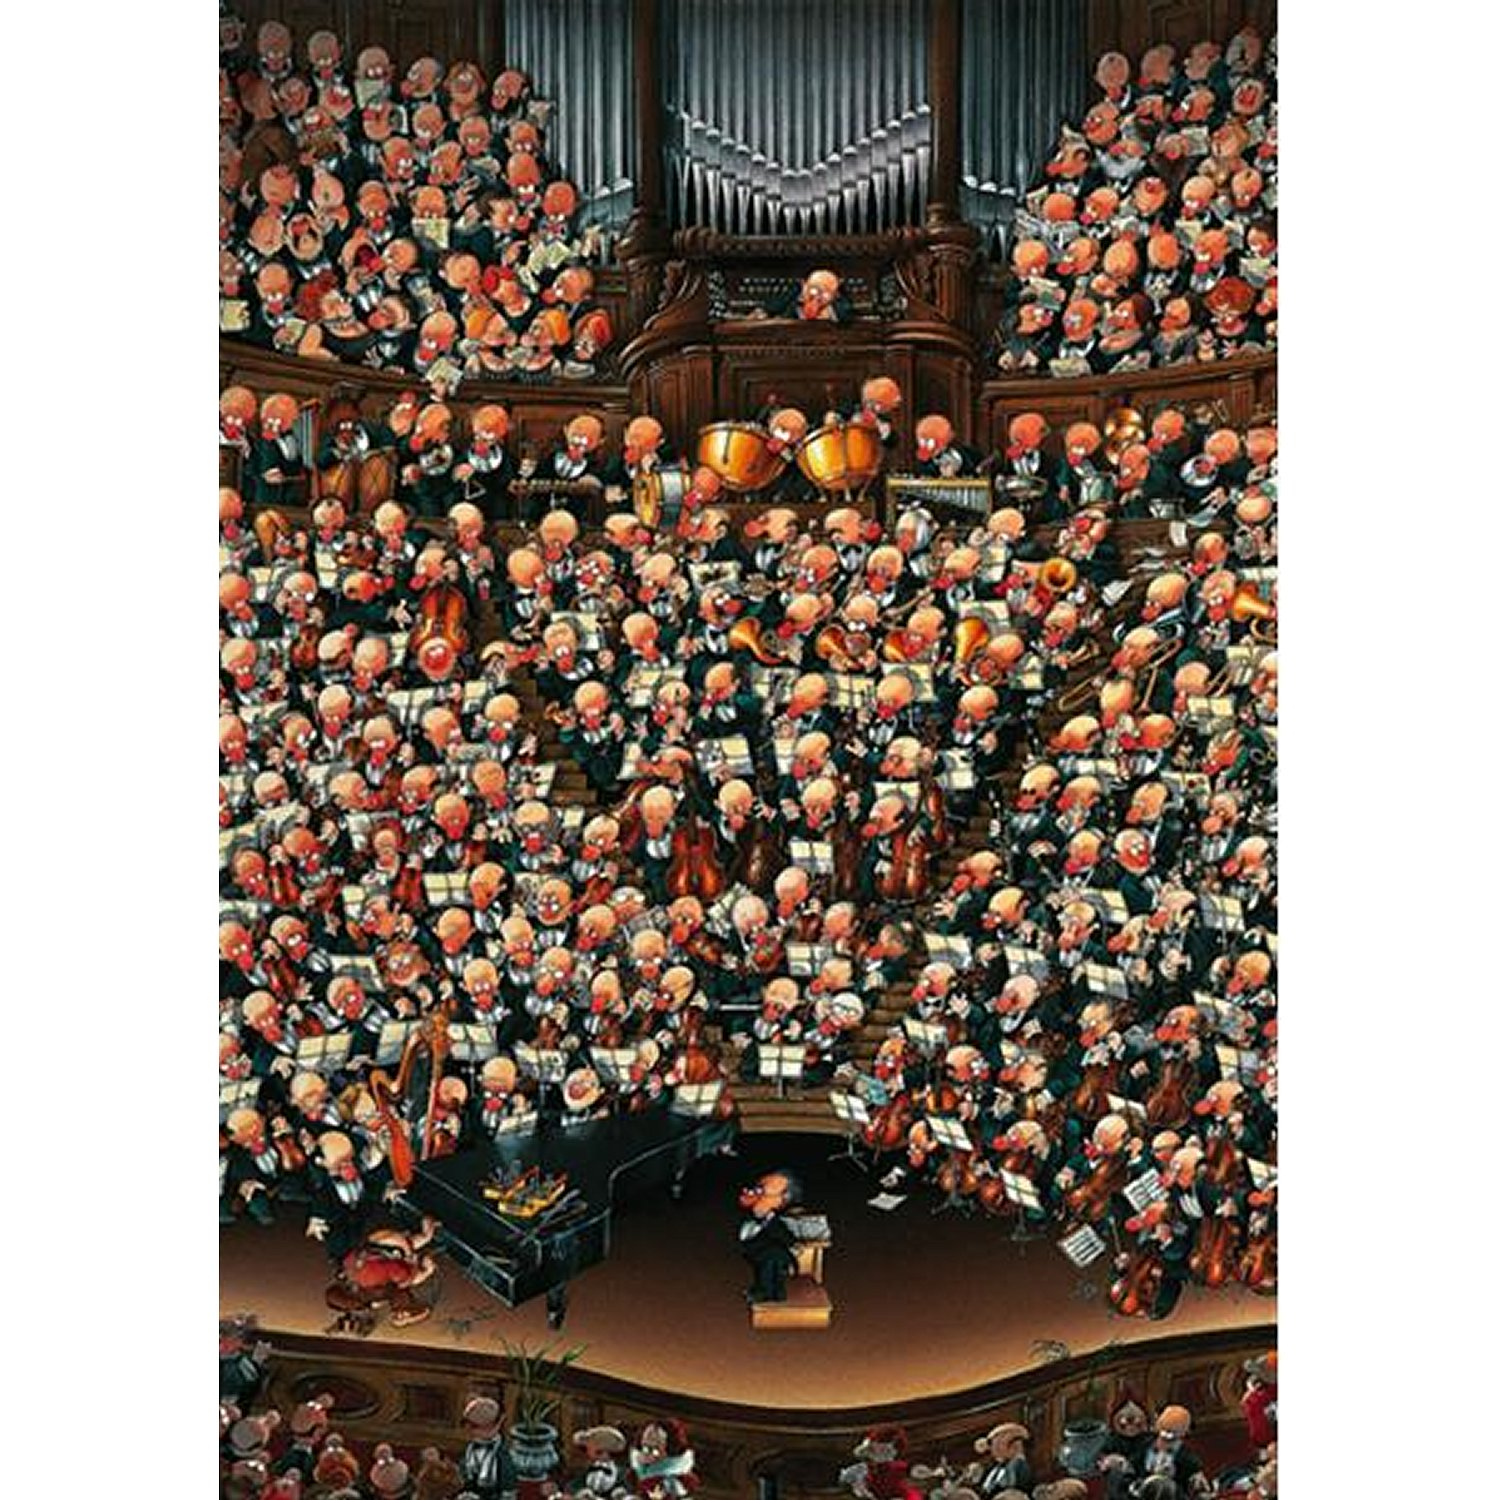 jigsaw puzzle 2000 pieces wolf orchestra heye 08660. Black Bedroom Furniture Sets. Home Design Ideas